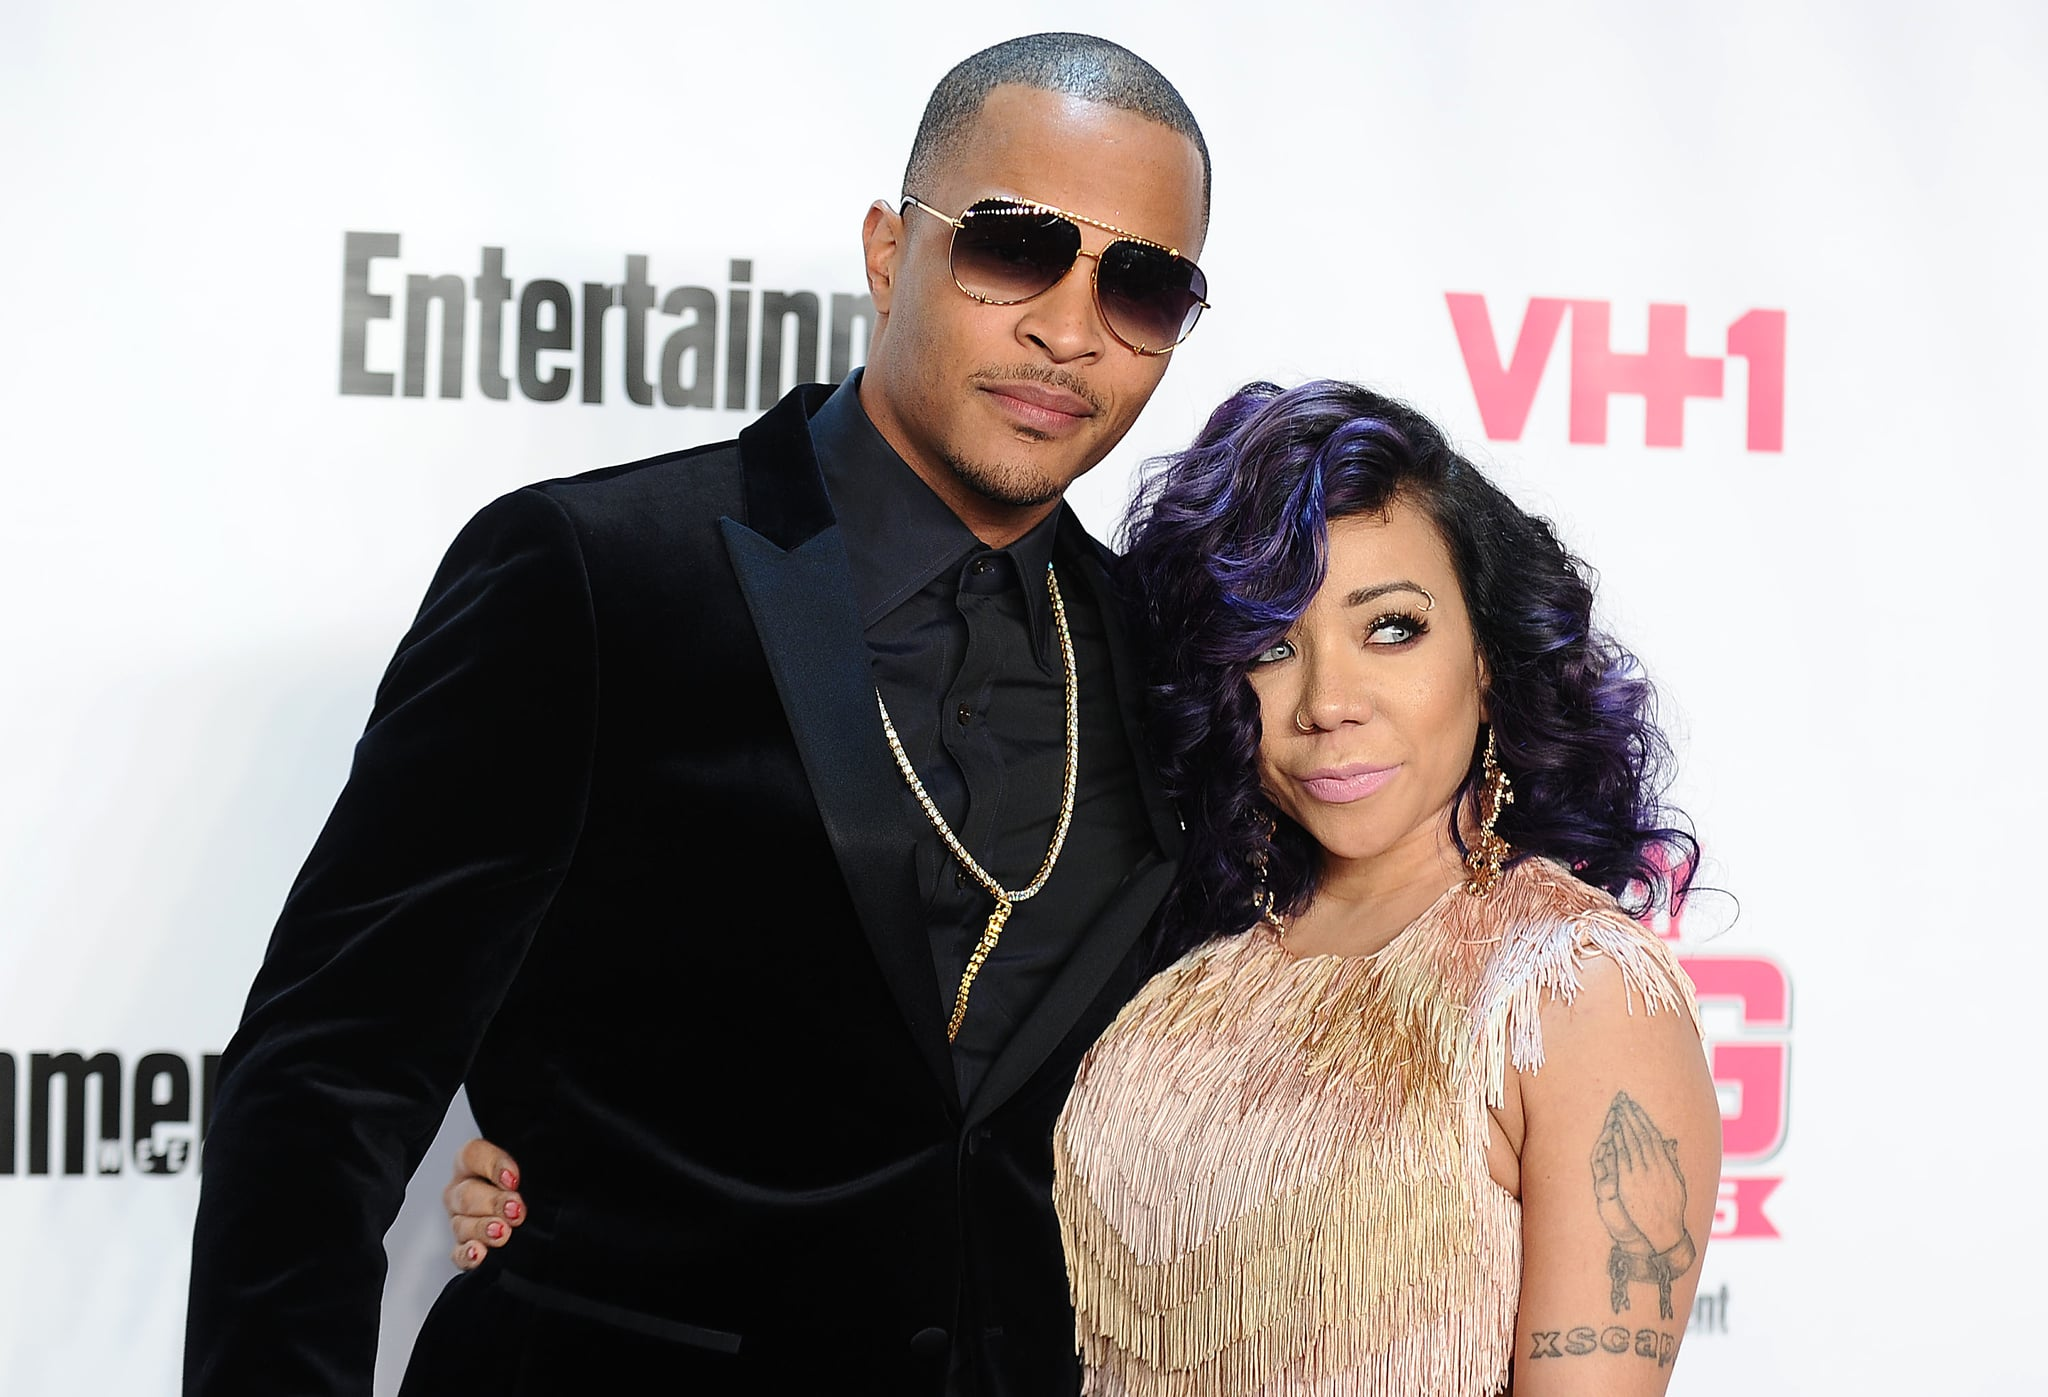 WEST HOLLYWOOD, CA - NOVEMBER 15:  Rapper T.I. and Tameka 'Tiny' Cottle-Harris attend the VH1 Big In 2015 with Entertainment Weekly Awards at Pacific Design Center on November 15, 2015 in West Hollywood, California.  (Photo by Jason LaVeris/FilmMagic)